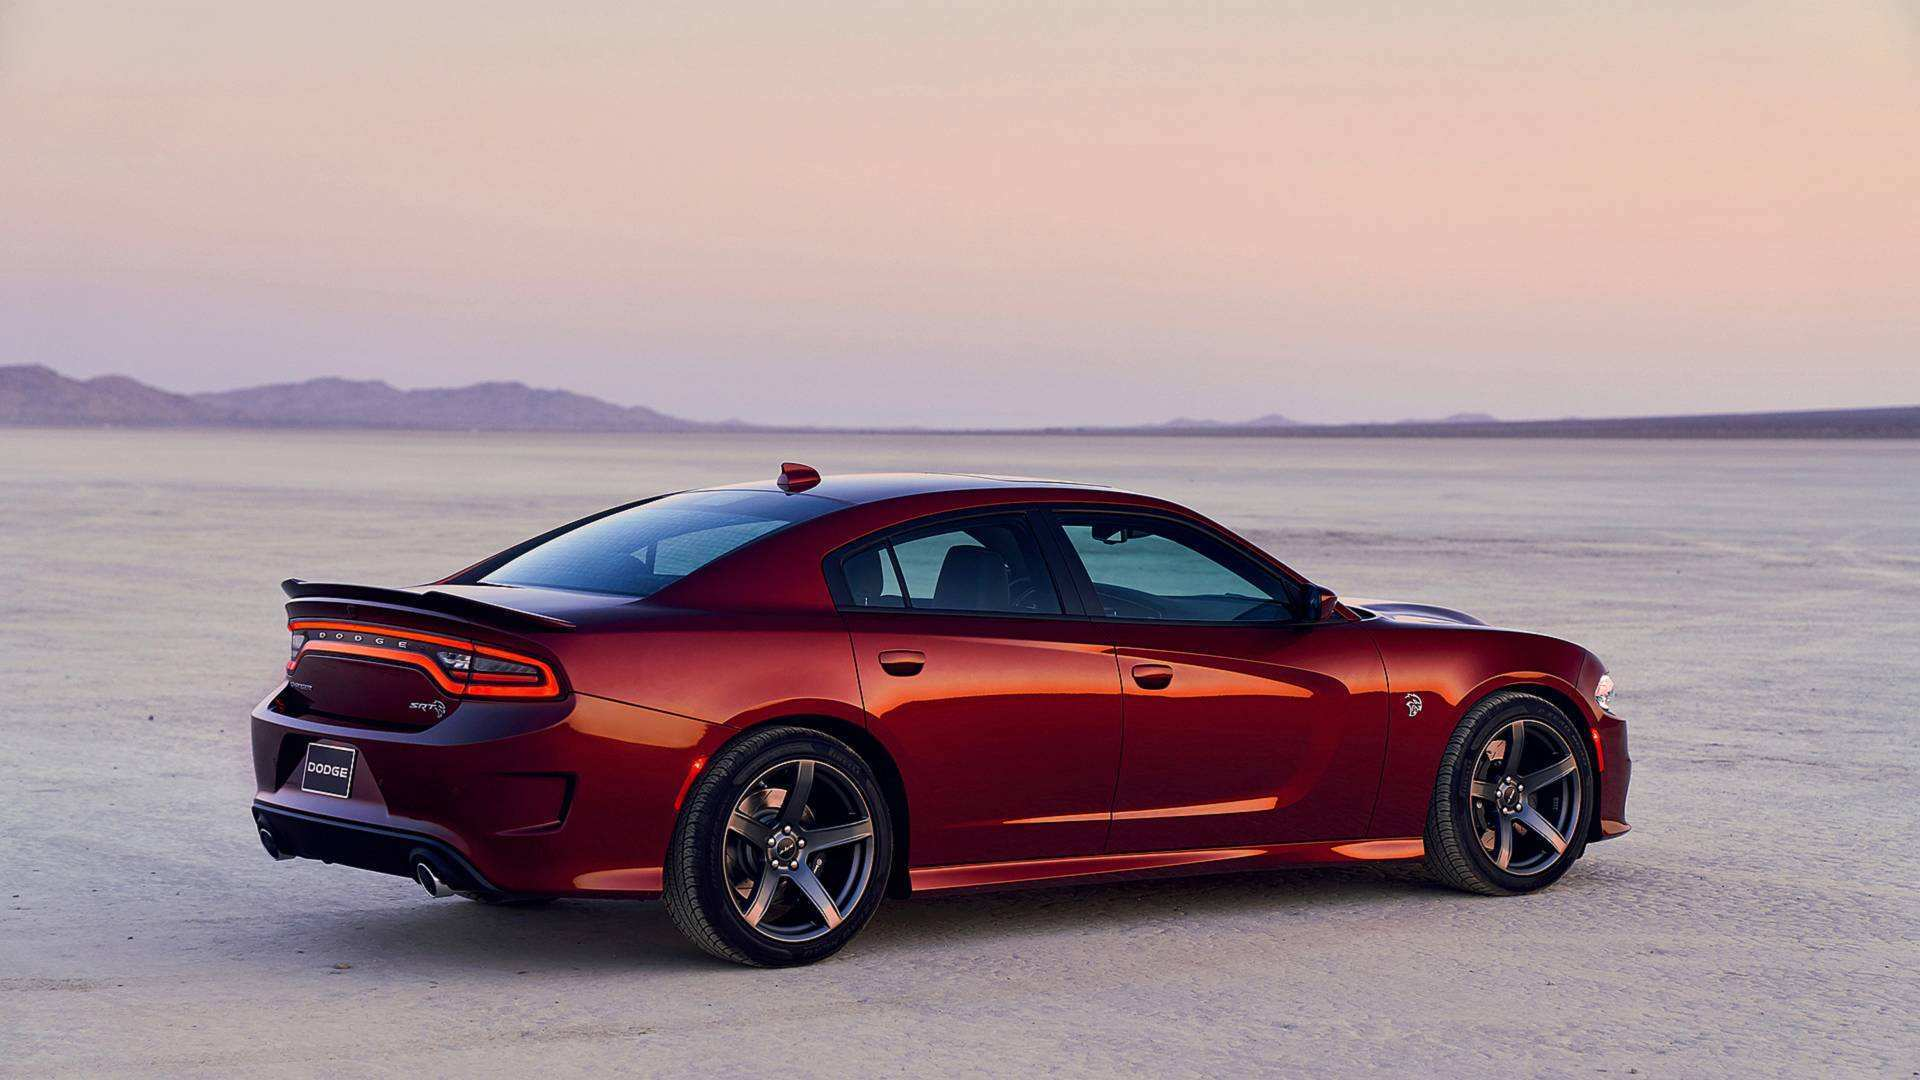 48 The 2020 Dodge Charger Srt8 Hellcat Prices